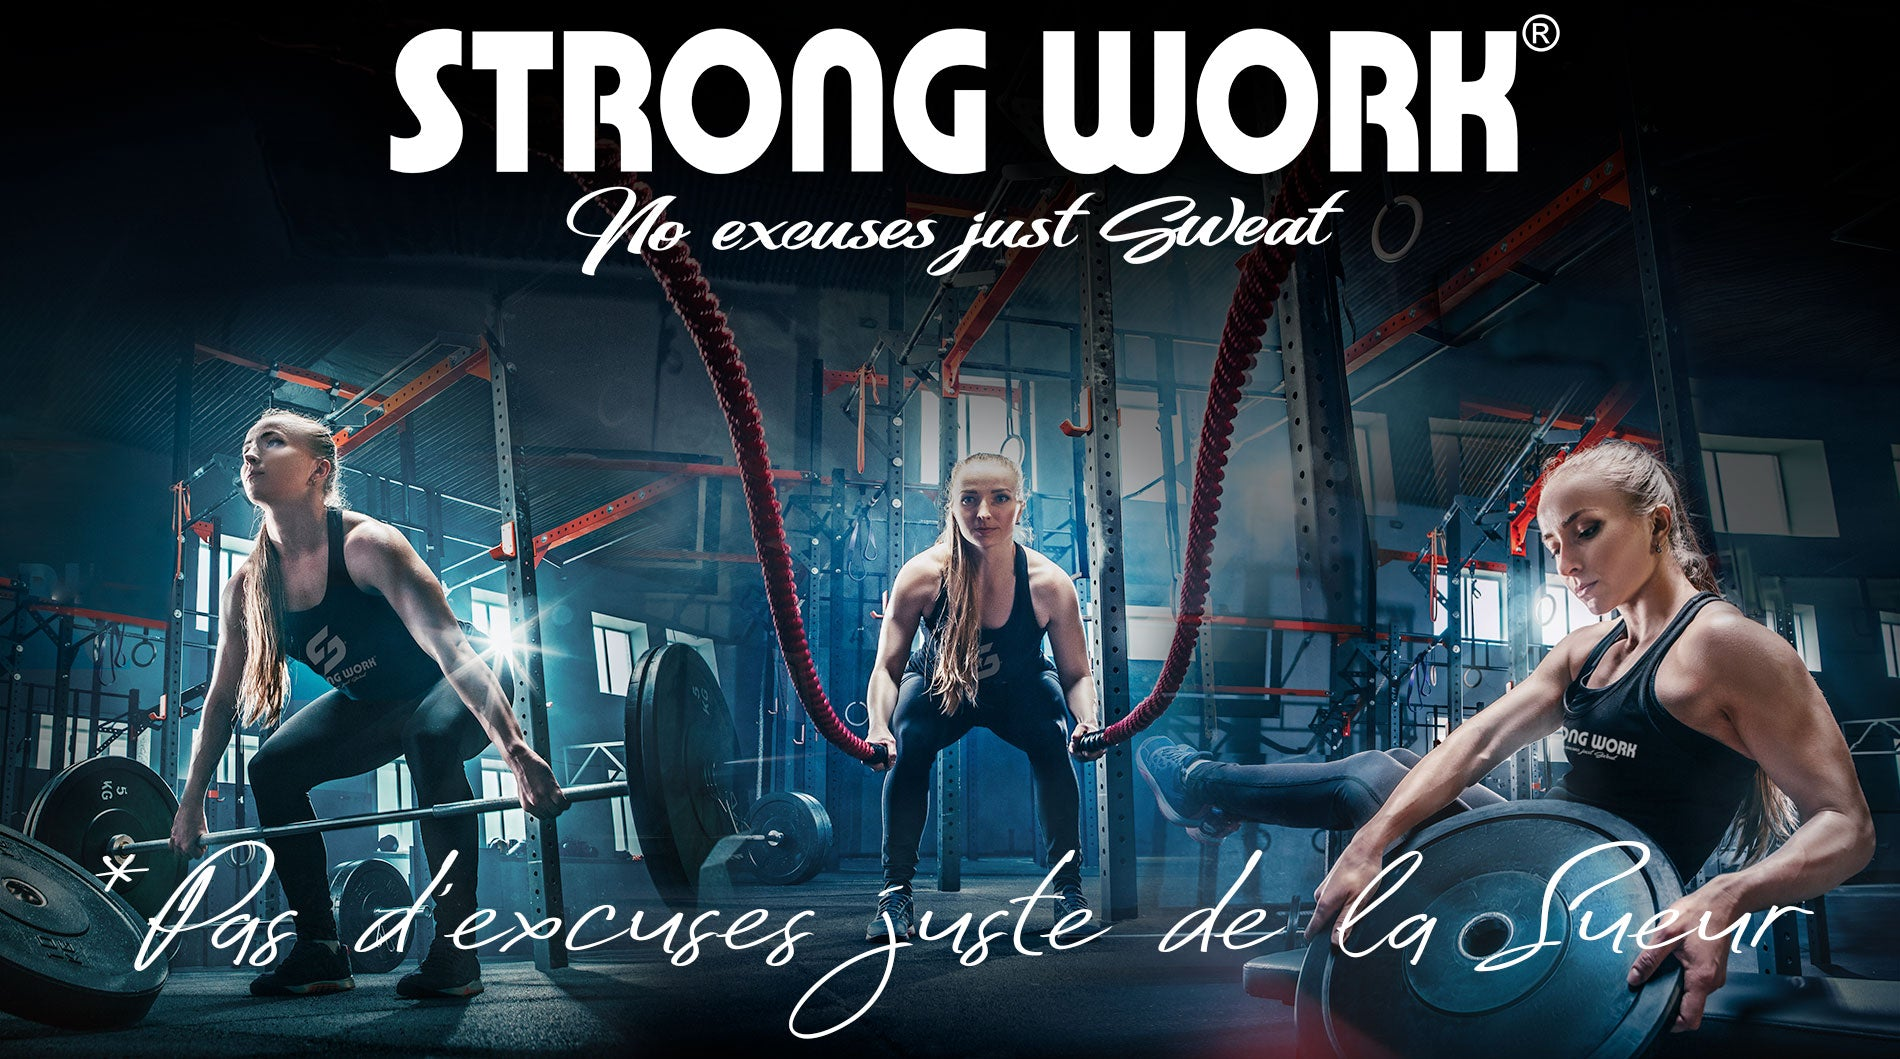 DEBARDEUR STRONG WORK INSPIRATION POUR FEMME